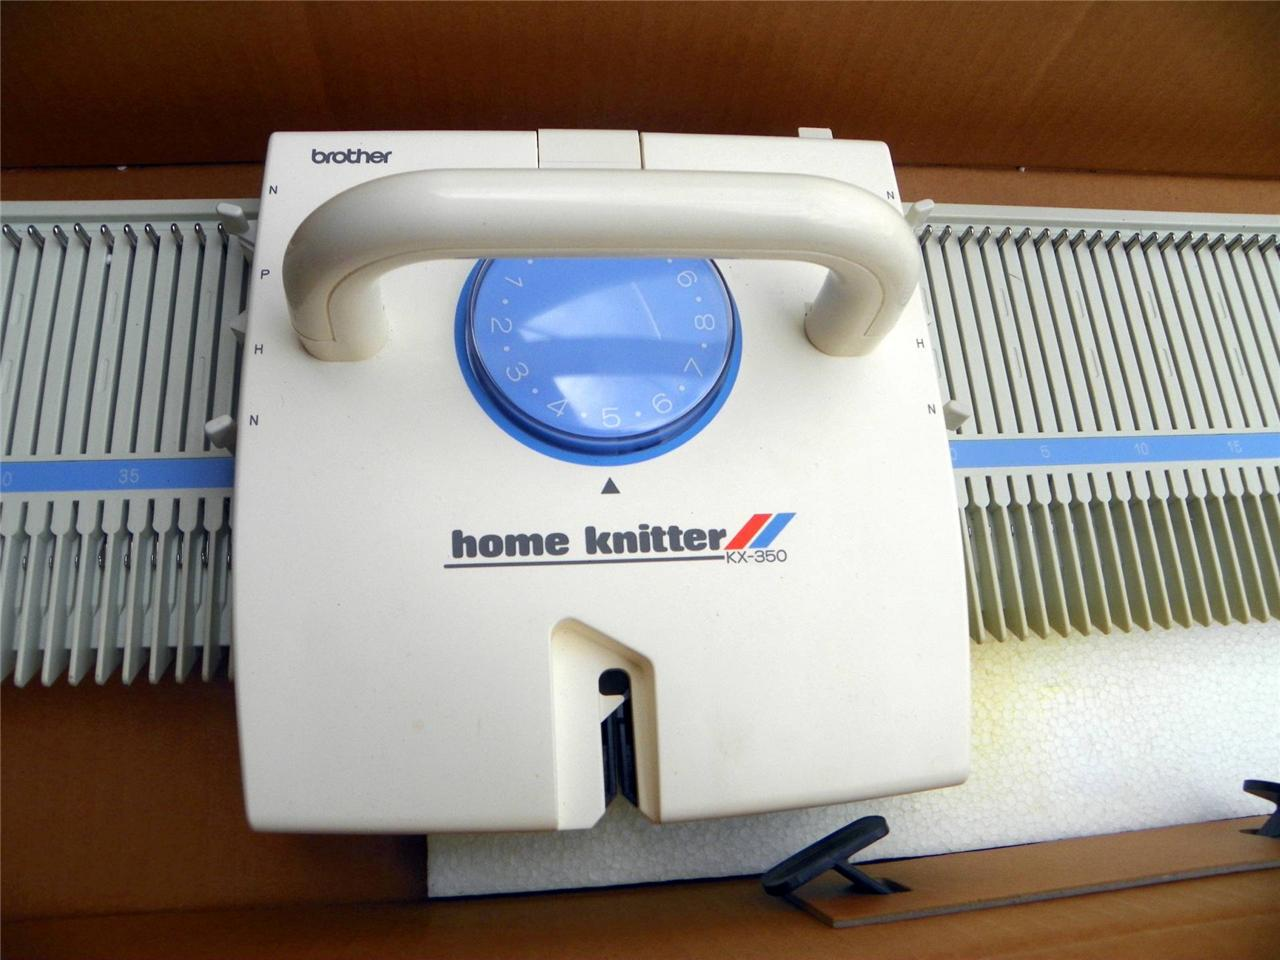 Knitting Machine For Home : Brother home knitting machine in box model kx